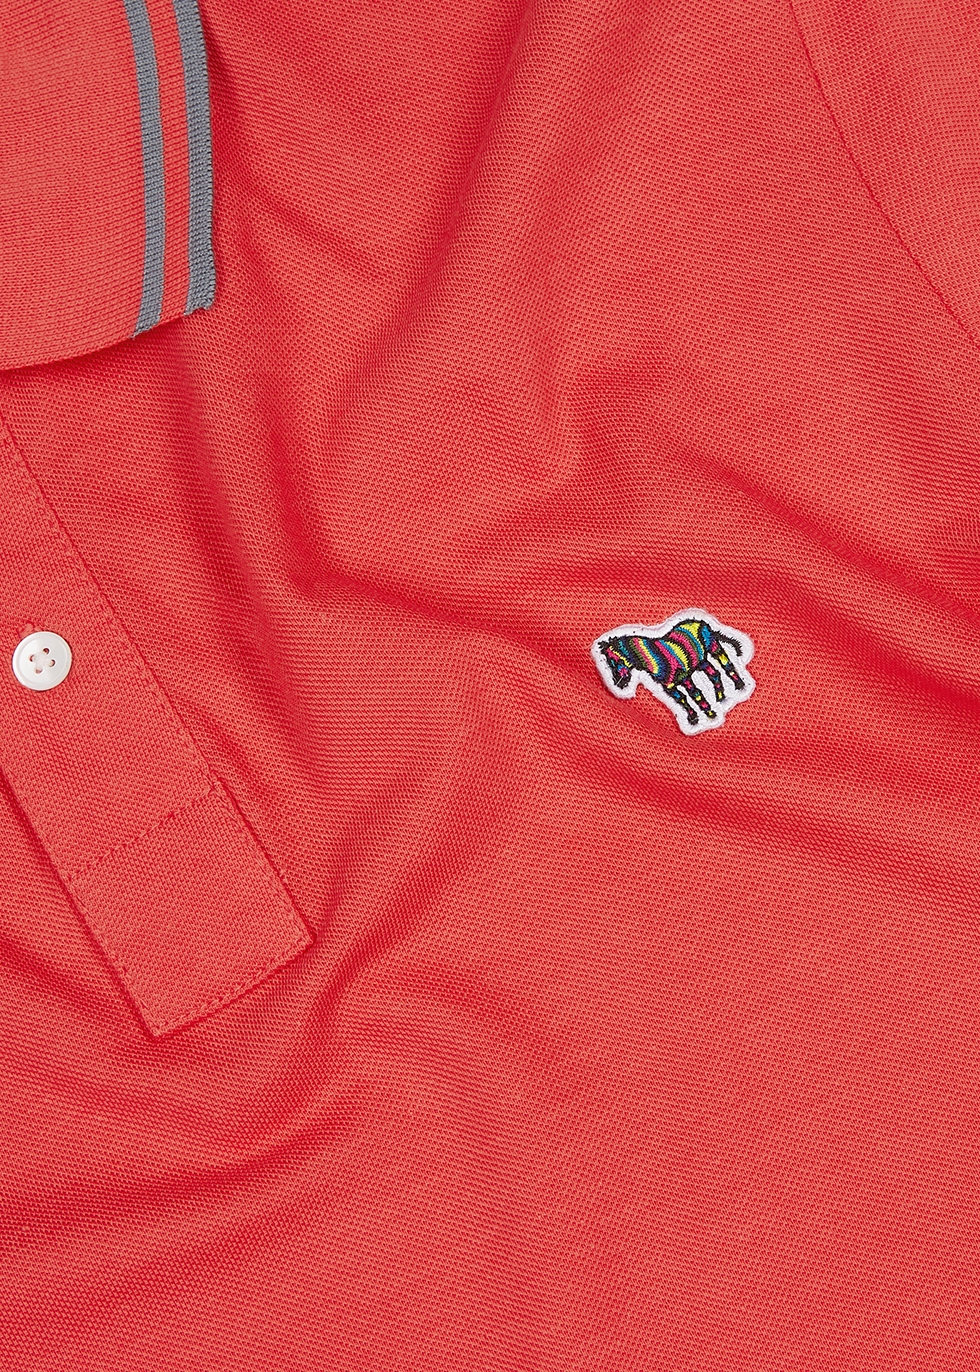 Red piqué cotton polo shirt - PS by Paul Smith